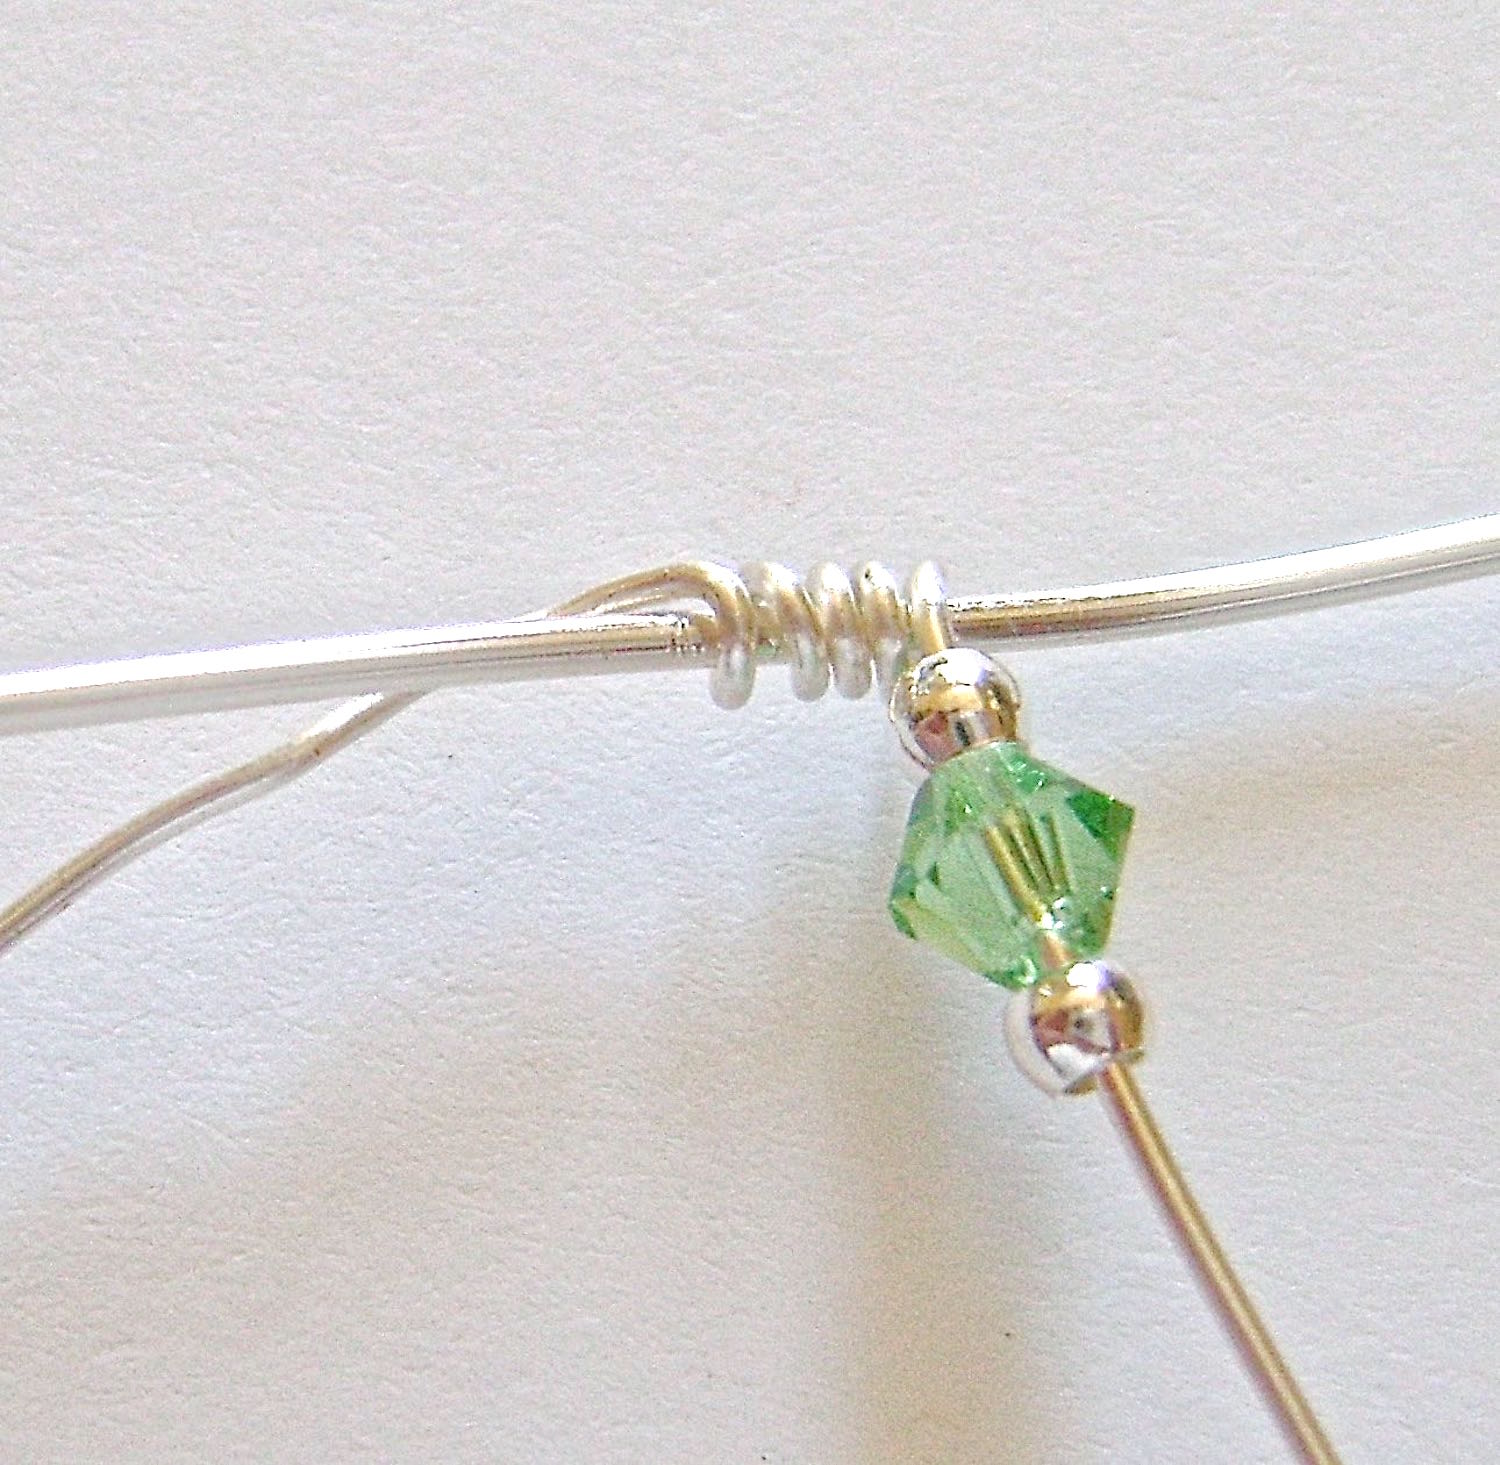 step 3 - Add a silver bead, bicone, and another silver bead to the right side wrapping wire.